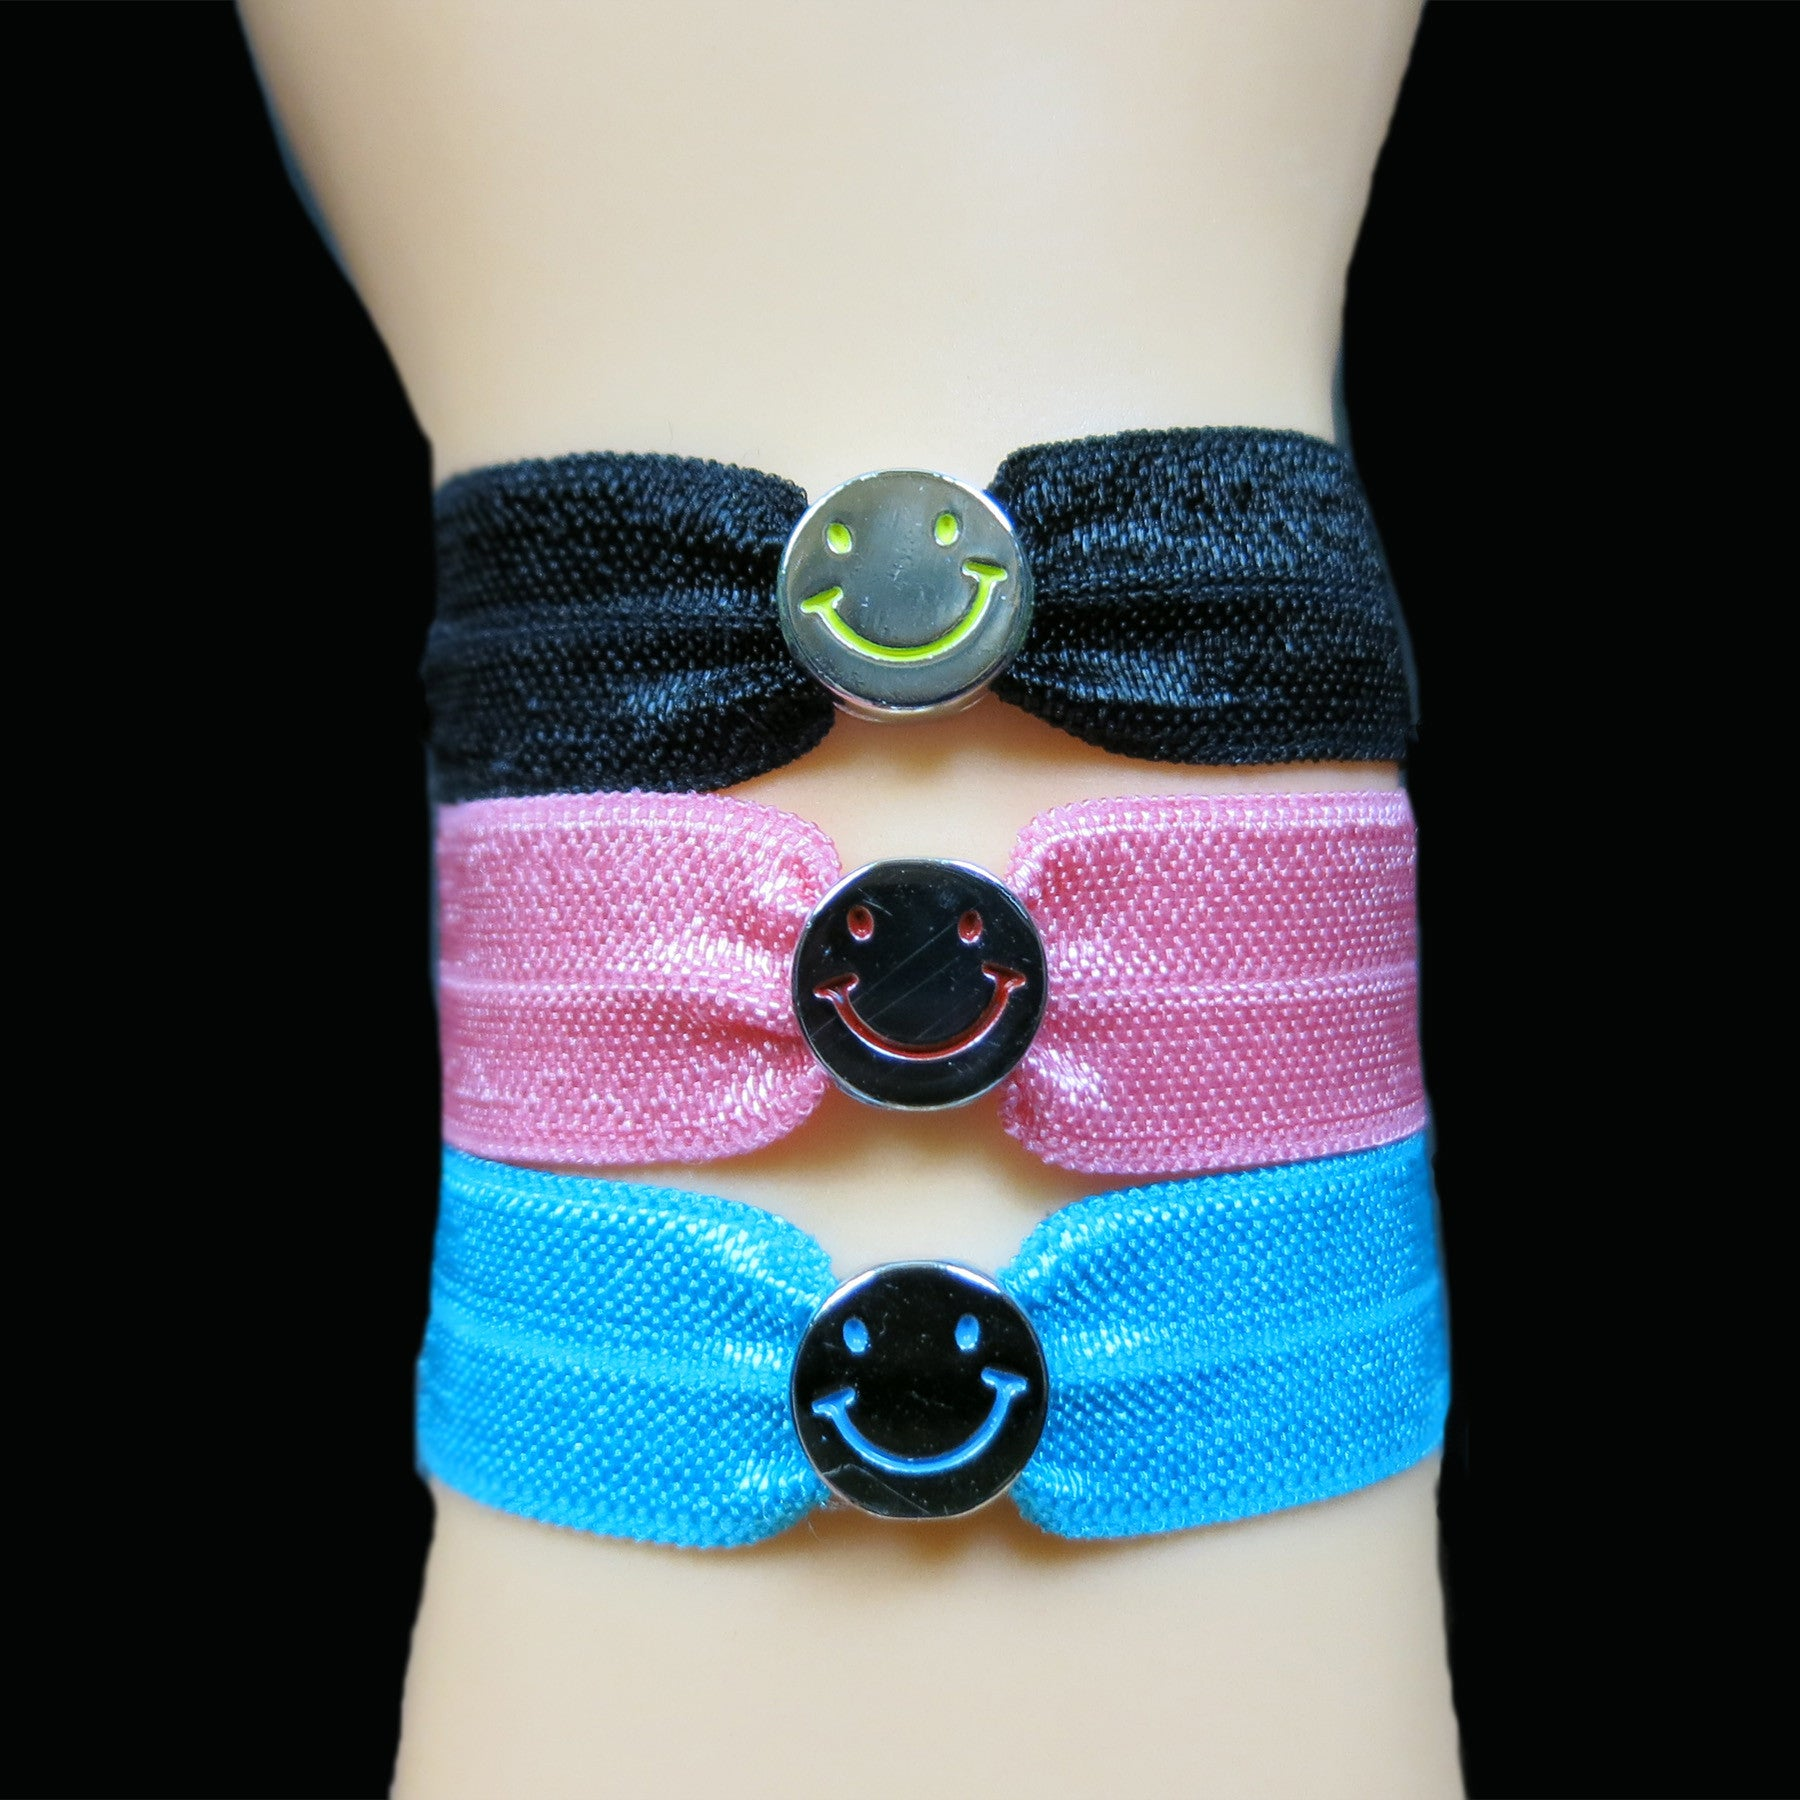 Silk Stretch Band with Smiley Charm